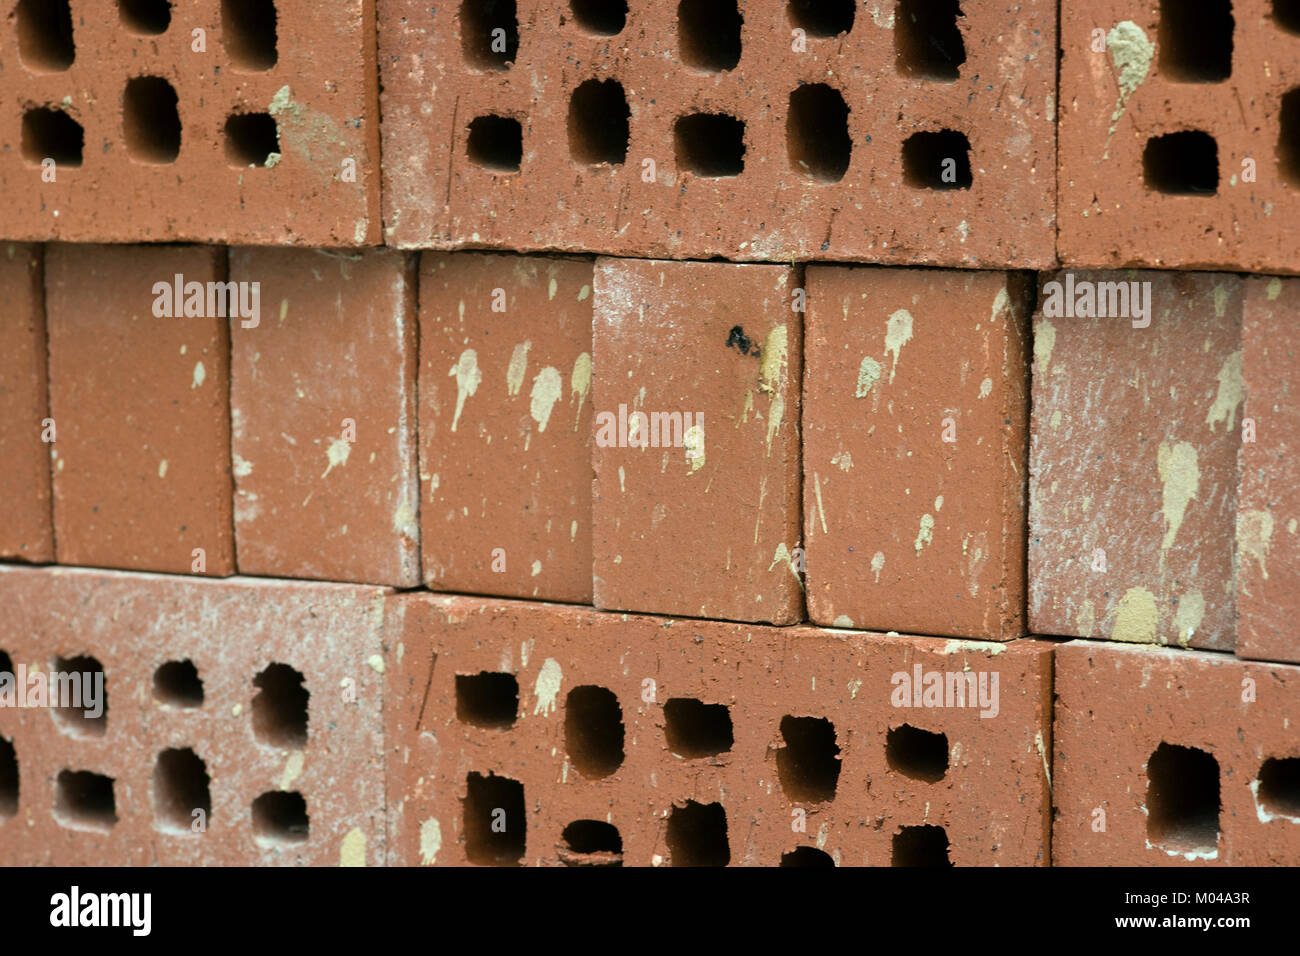 New but dirty semi-engineering bricks construction background - Stock Image